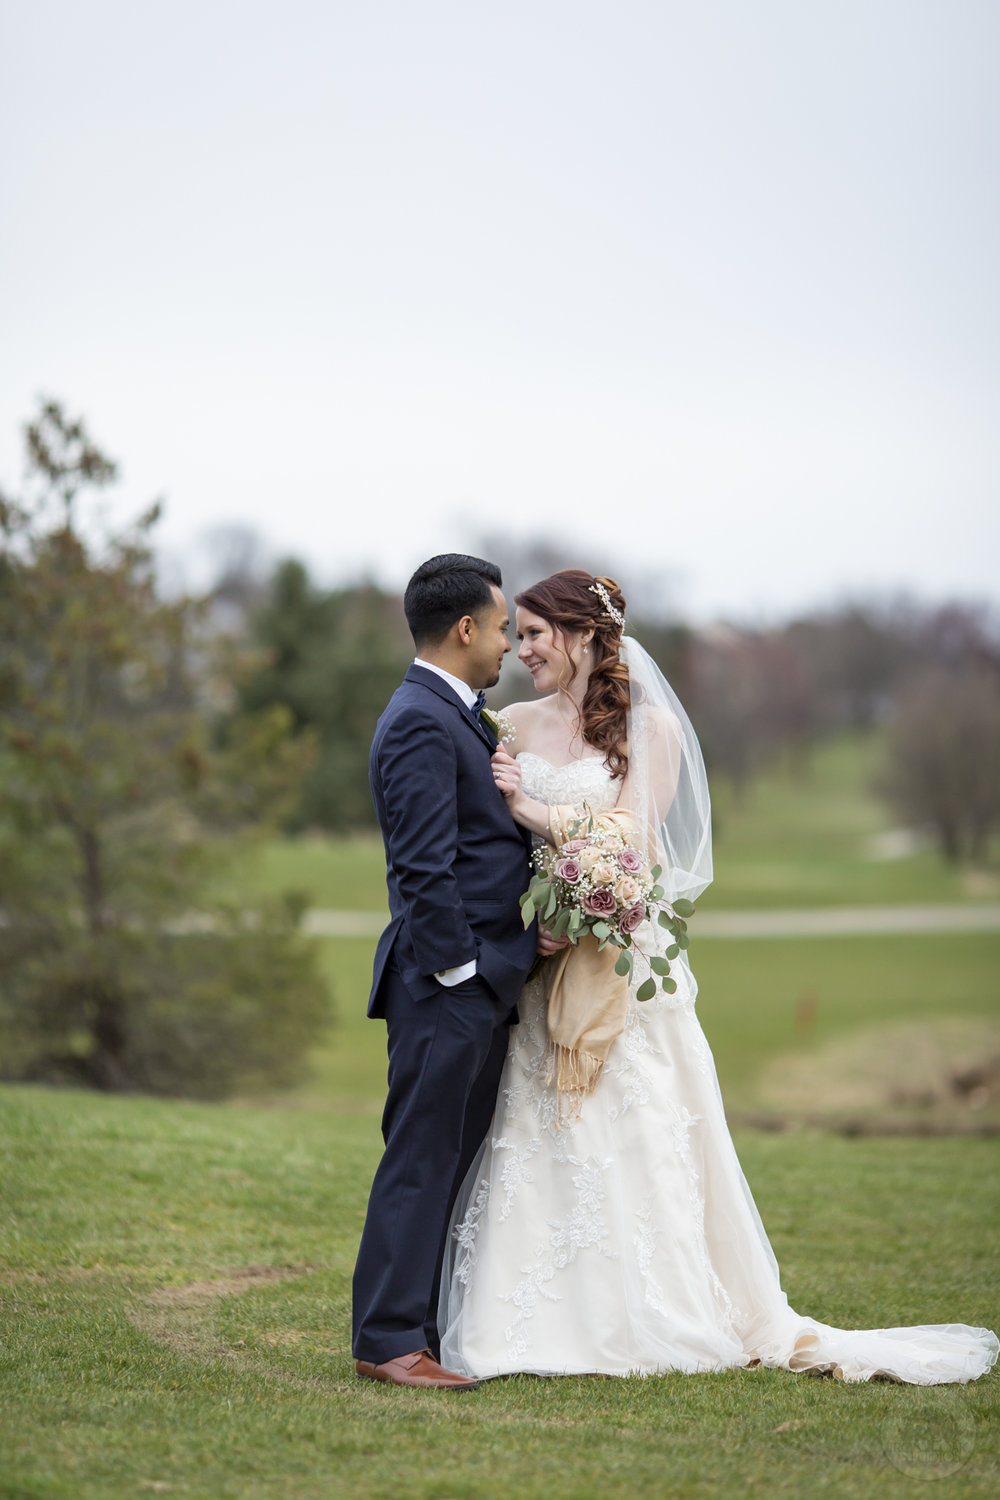 Iron-Oak-Studios-Contreras-Wedding-Blog-Heritage-Hills-Resort-York-73.jpg